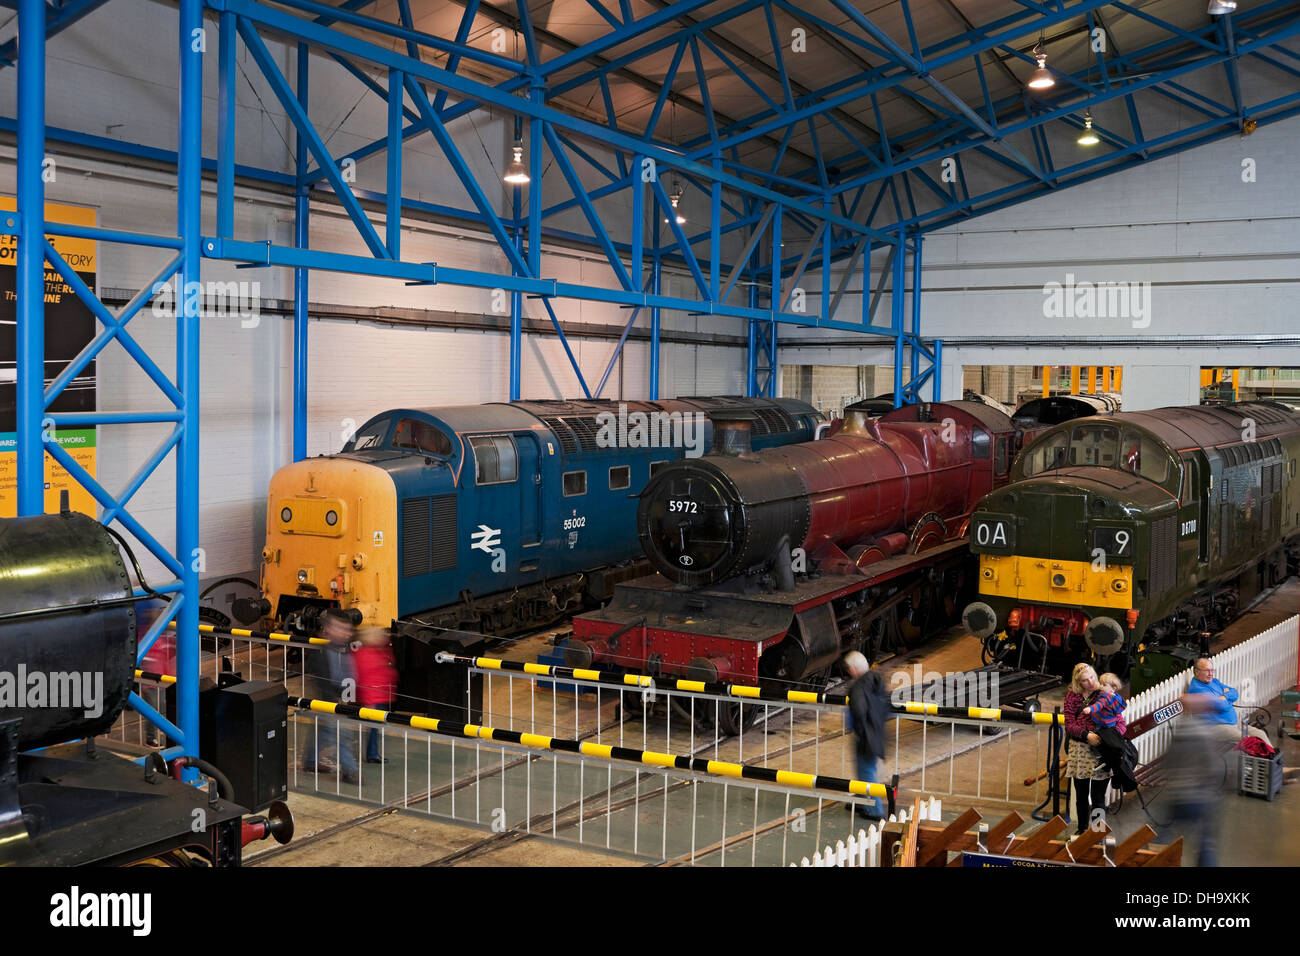 Diesel and steam trains at the National